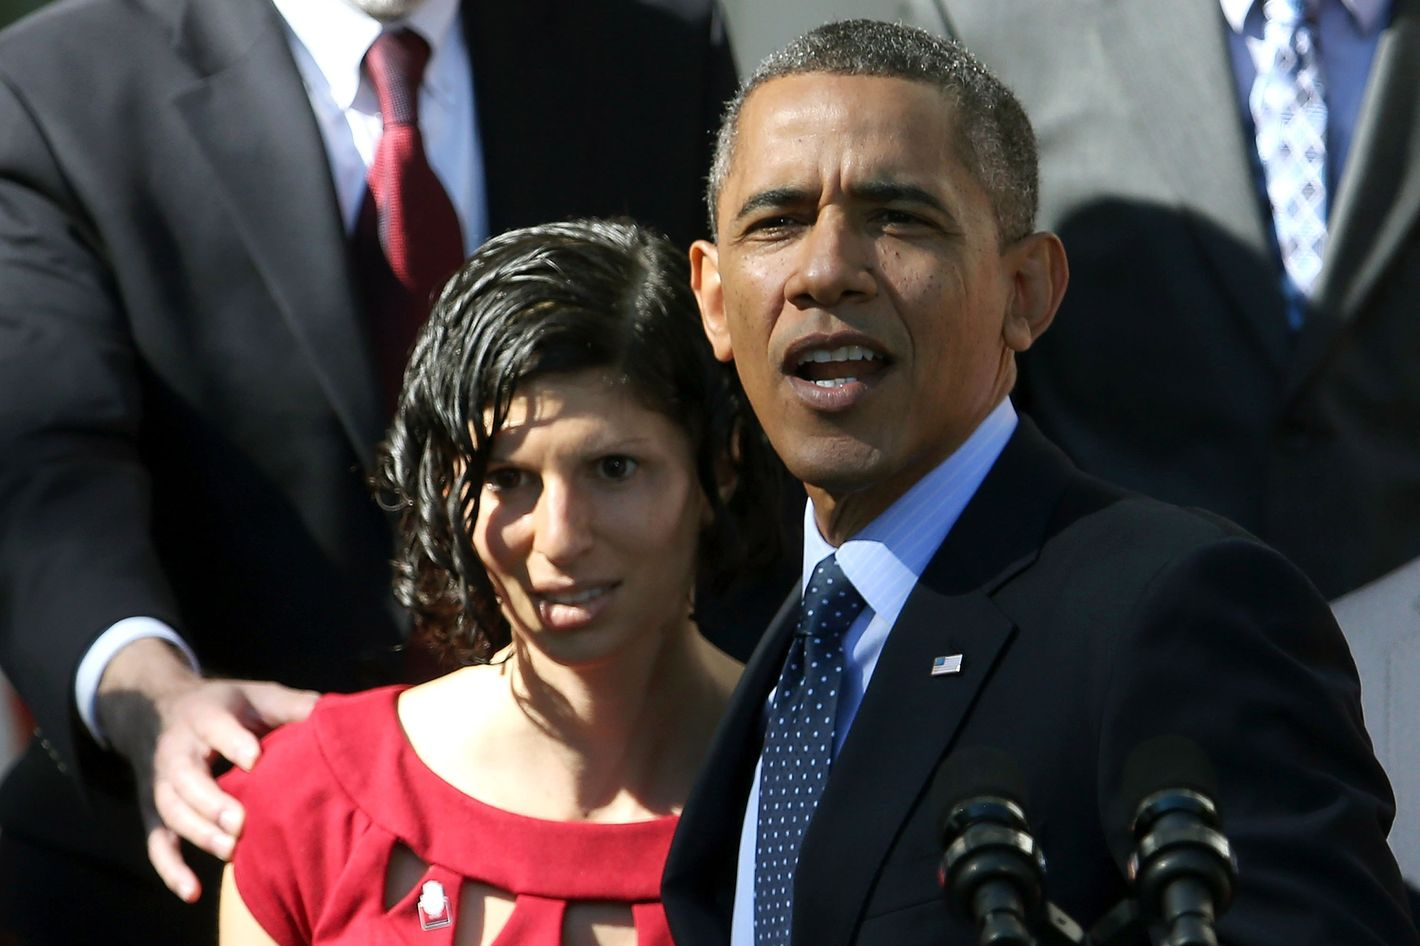 WASHINGTON, DC - OCTOBER 21: U.S. President Barack Obama holds onto Karmel Allison who has Type 1 Diabetes and felt light headed while he was delivering remarks about the error-plagued launch of the Affordable Care Act's online enrollment website in the Rose Garden of the White House October 21, 2013 in Washington, DC. According to the White House, the president was joined by 'consumers, small business owners, and pharmacists who have either benefitted from the health care law already or are helping consumers learn about what the law means for them and how they can get covered. 'Despite the new health care law's website problems, Obama urged Americans not to be deterred from registering for Obamacare because of the technological problems that have plagued its rollout.  (Photo by Mark Wilson/Getty Images)